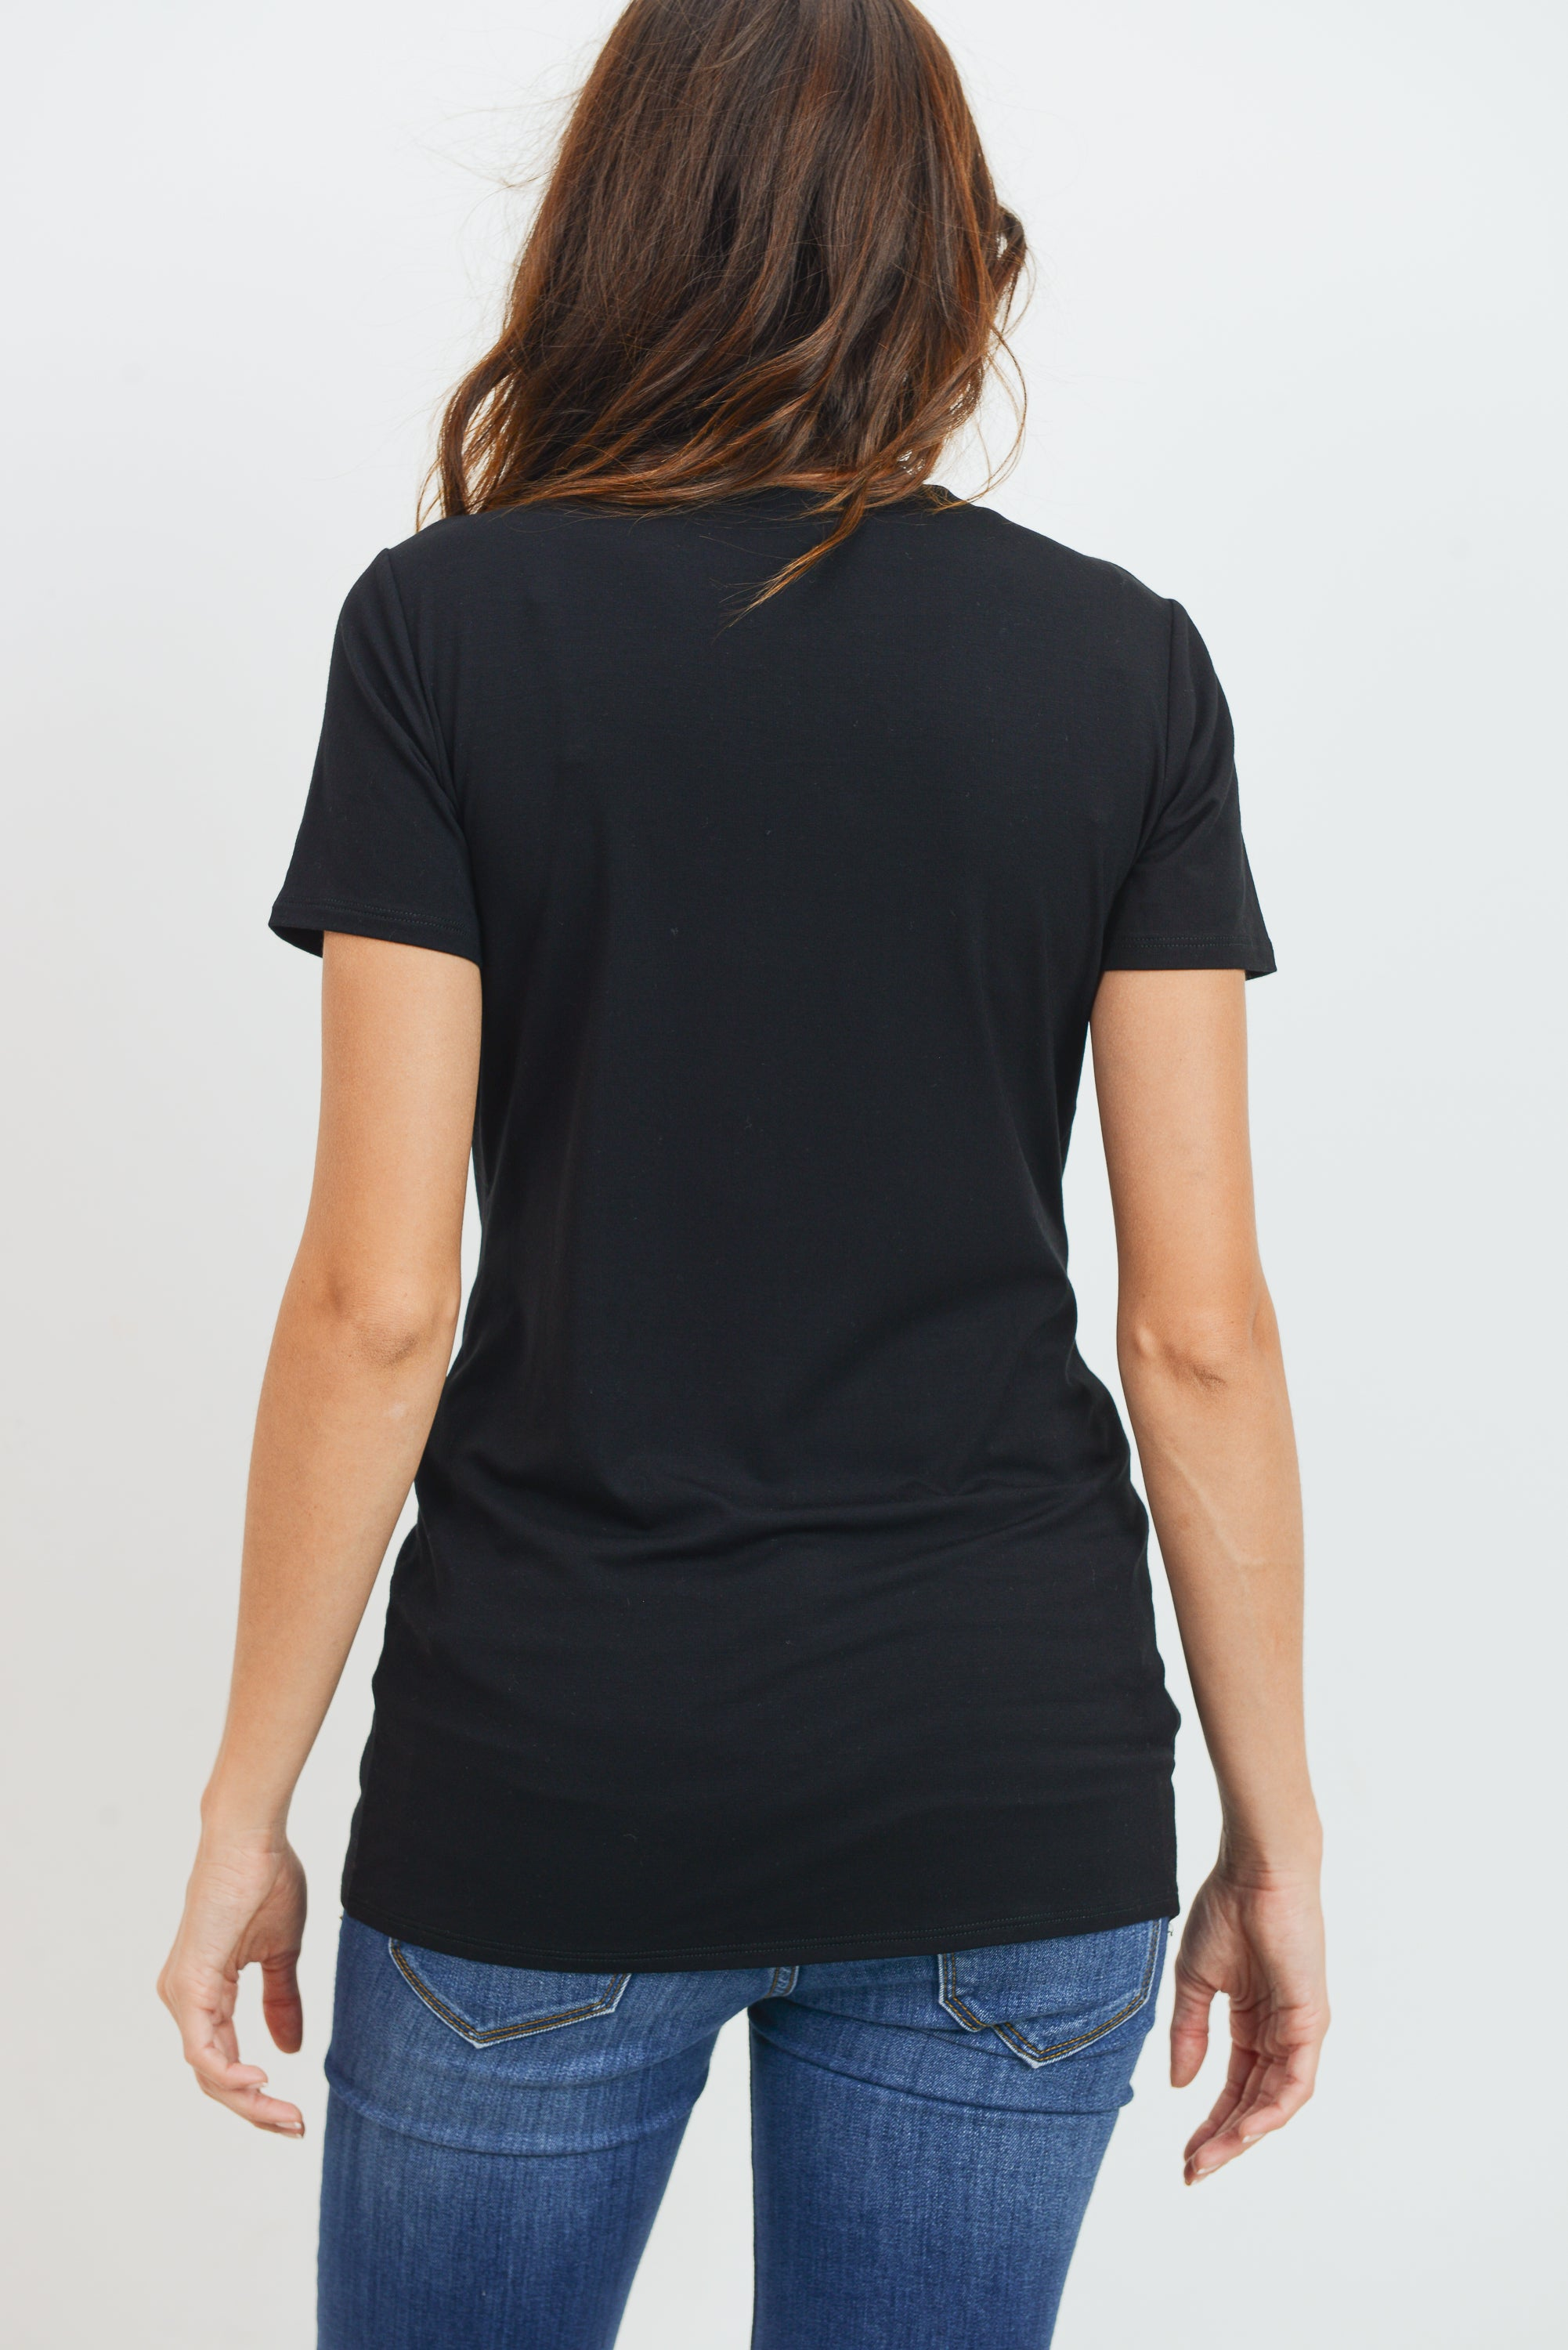 Modal Jersey Round Neck Short Sleeve Top